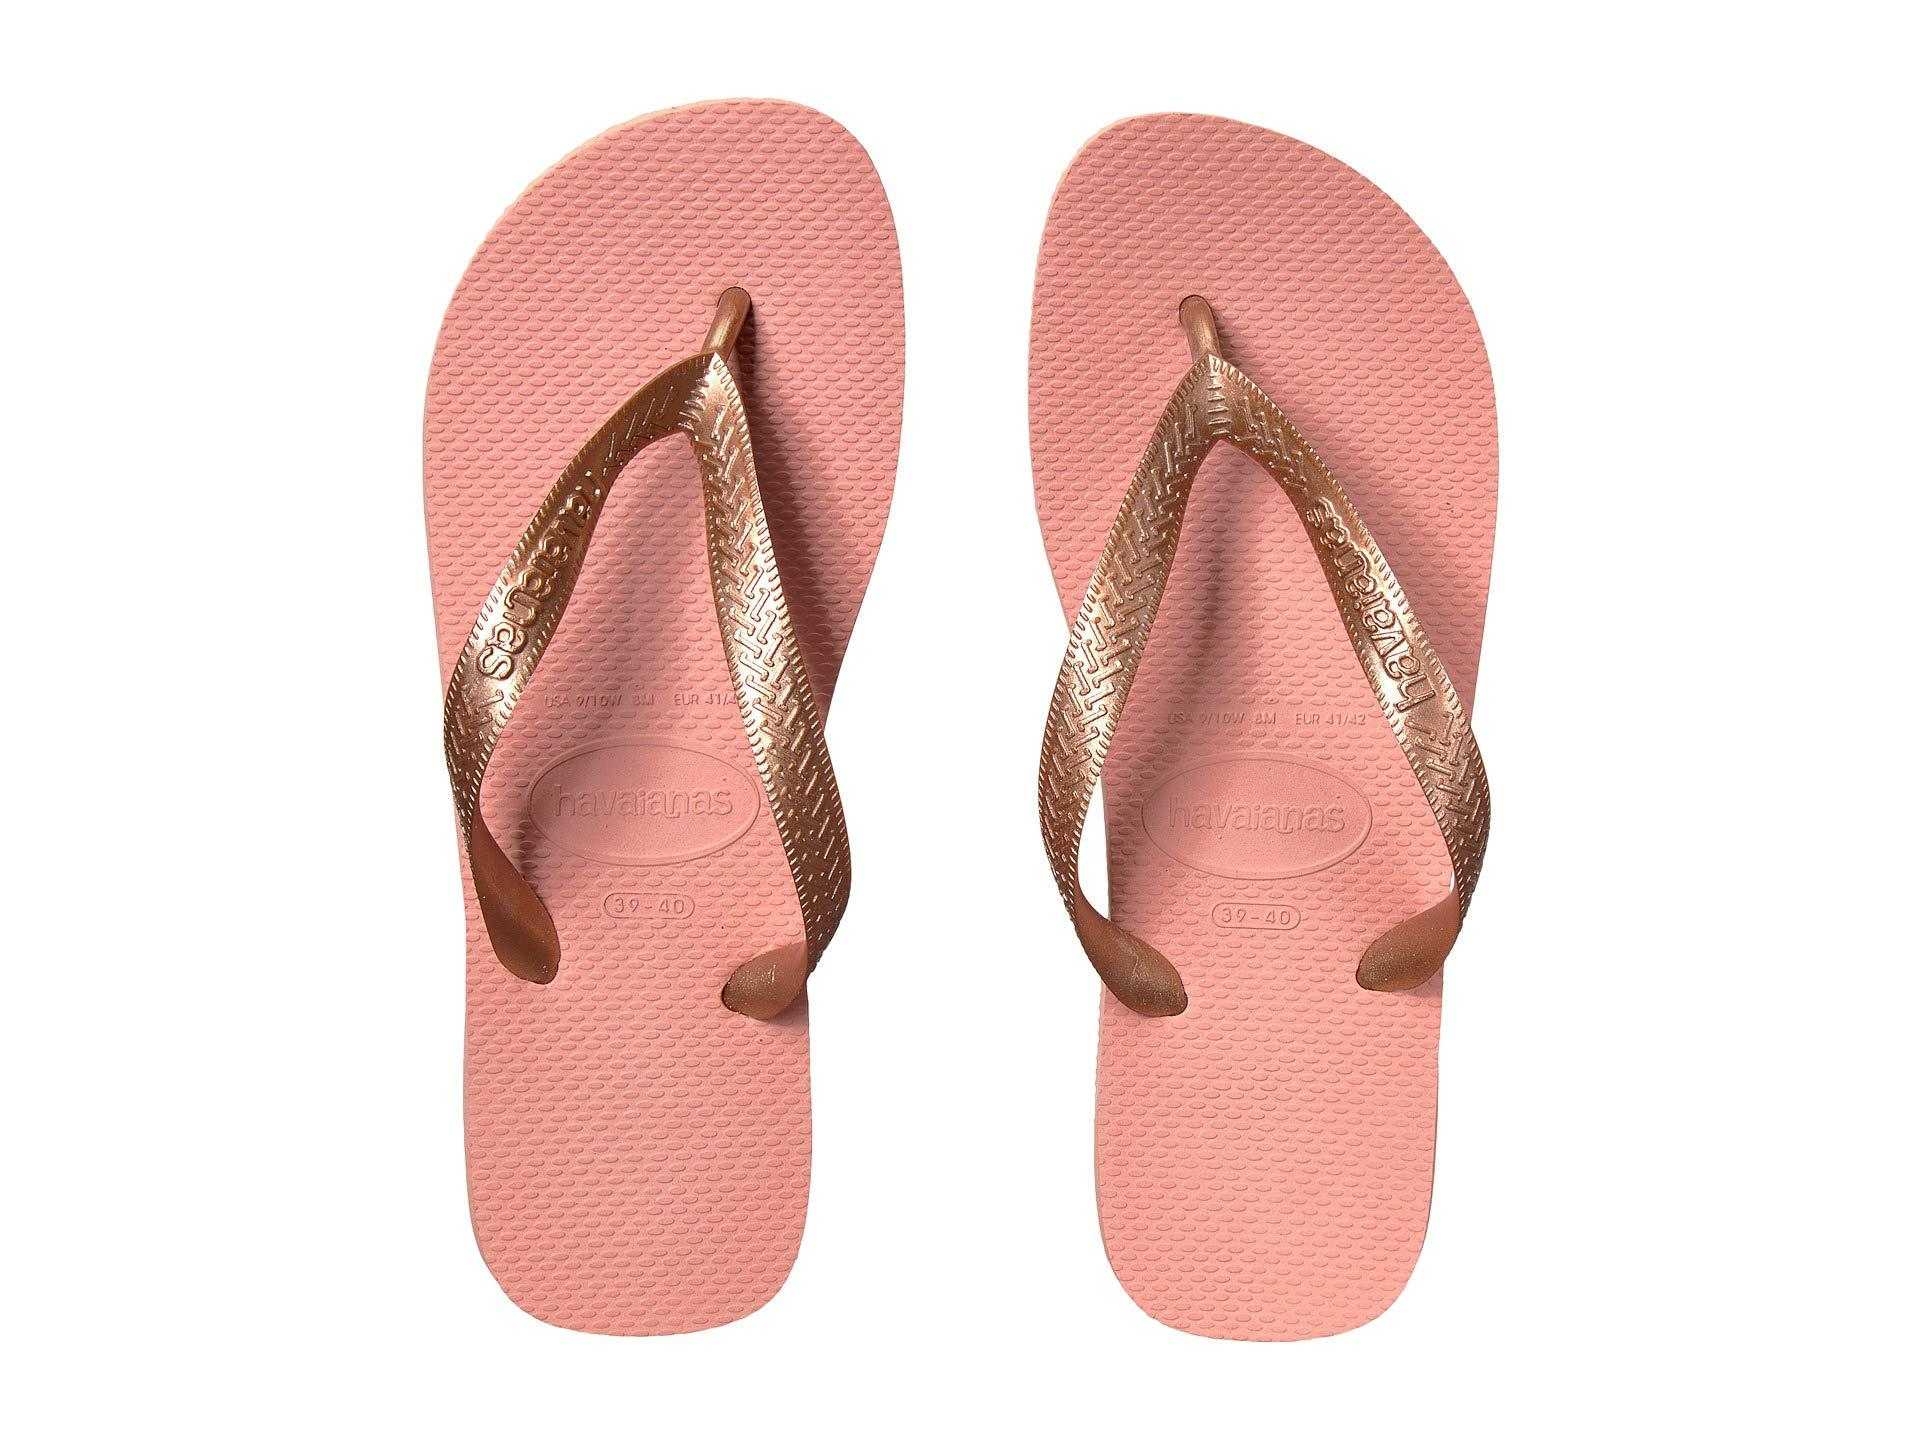 0a20a638c Havaianas - Pink Top Tiras Flip-flops (rose Gold) Women s Sandals - Lyst.  View fullscreen